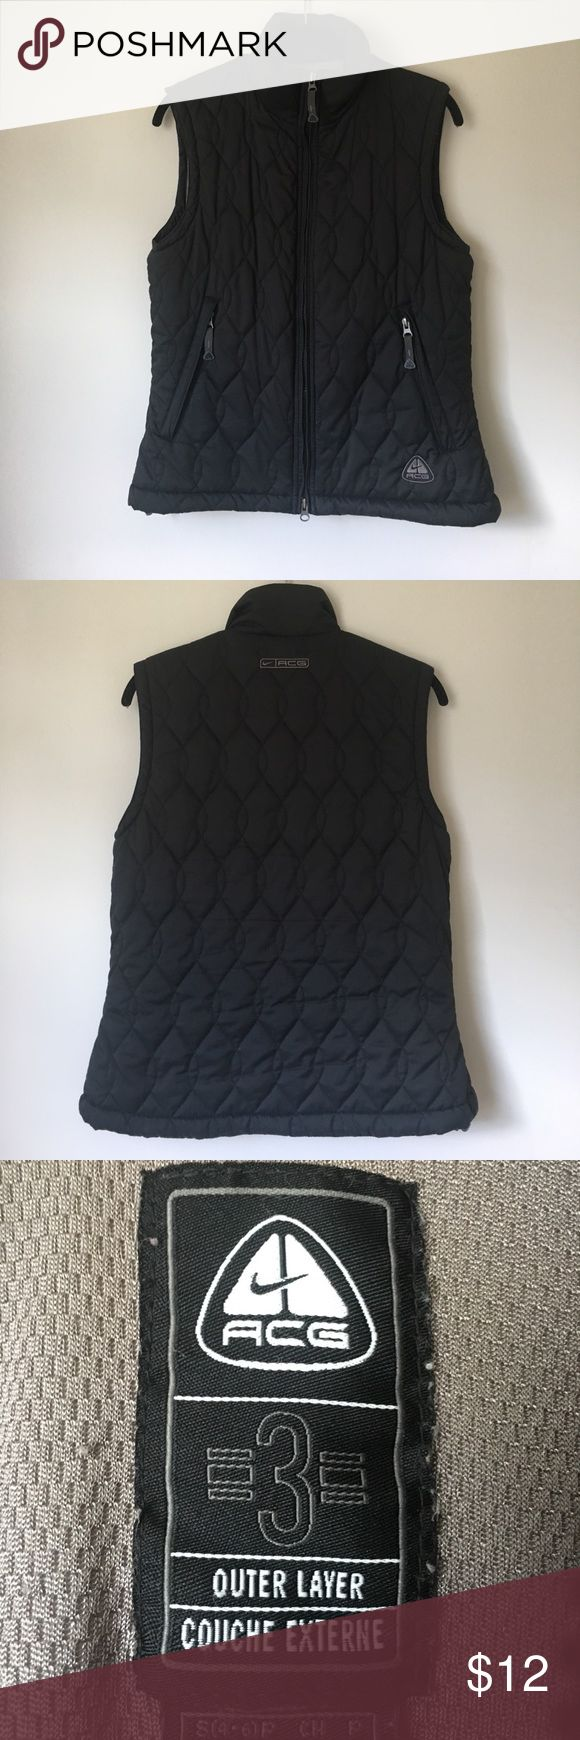 Nike ACG vest Nike vest. Has zippers on shoulders to attach sleeves but no longer has the sleeves. Still a great vest! Has a lot of life left! Nike ACG Jackets & Coats Vests